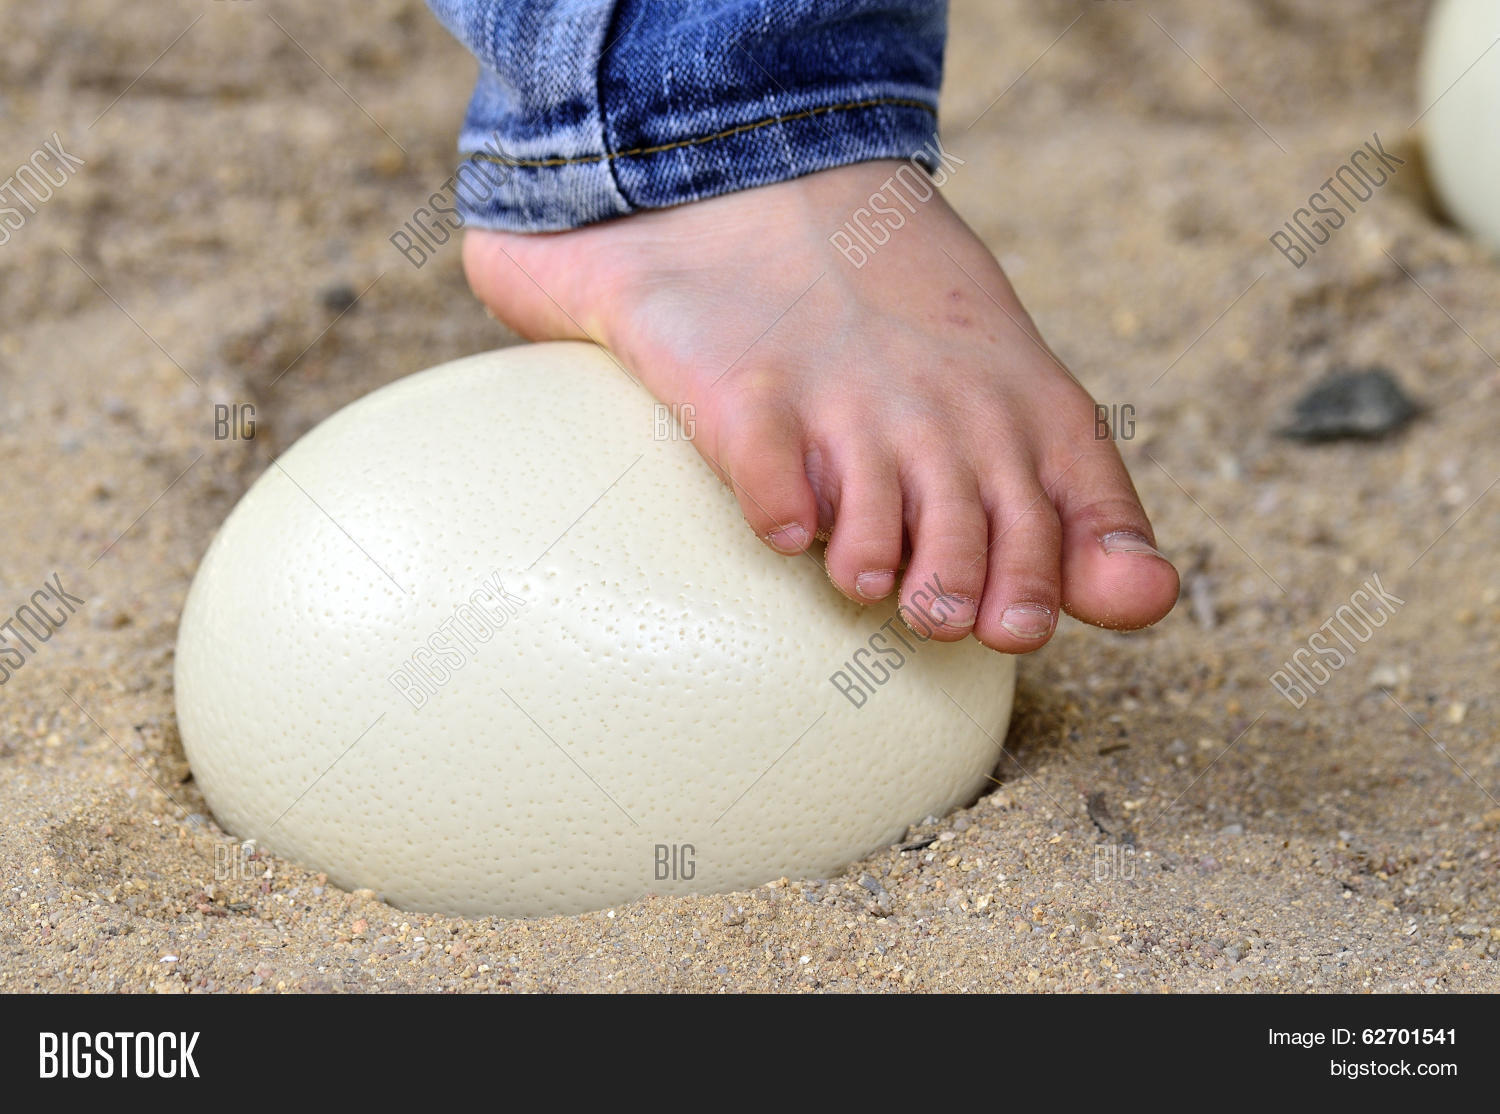 Ostrich Egg Is Strong Enough To Step Up With Feet On Its, No ...